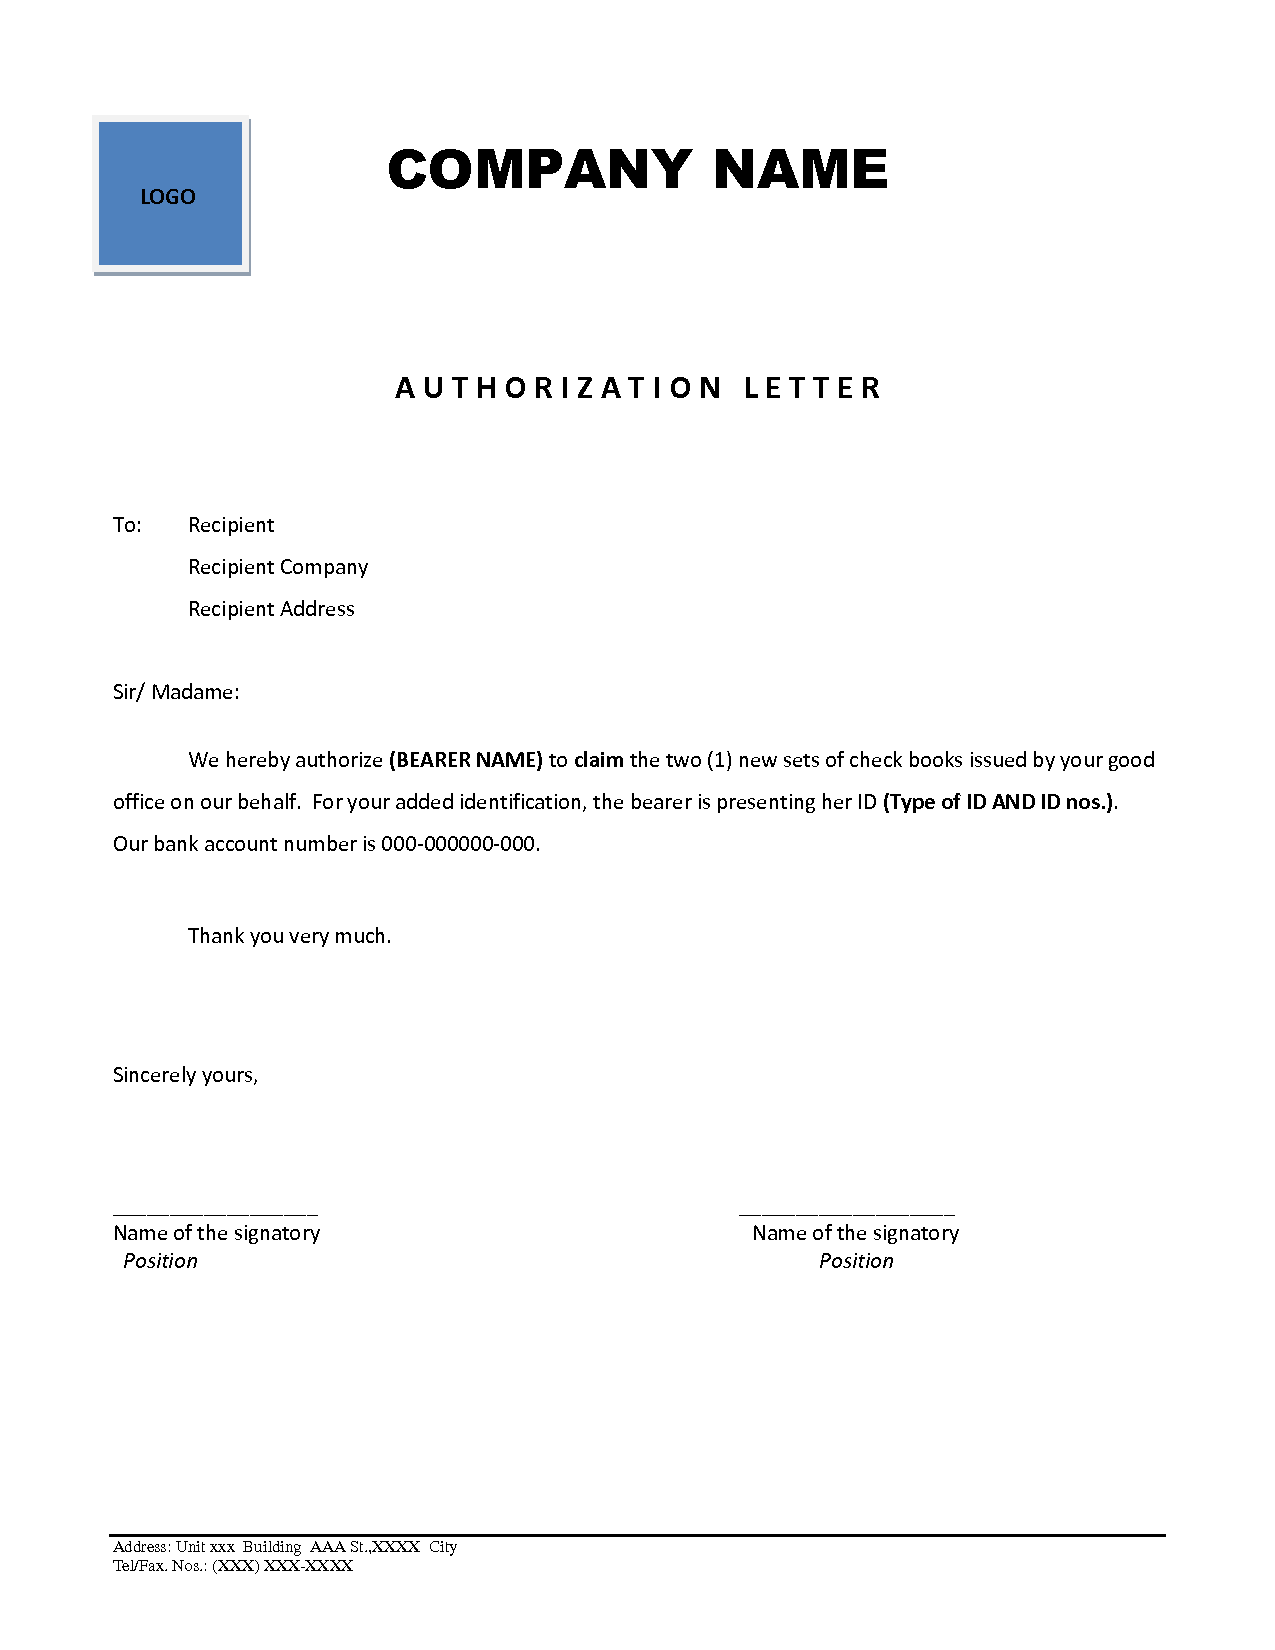 Letter for documents authorization and making mark introduction letter for documents authorization and making mark introduction trademarks nigerian smes flashek Gallery